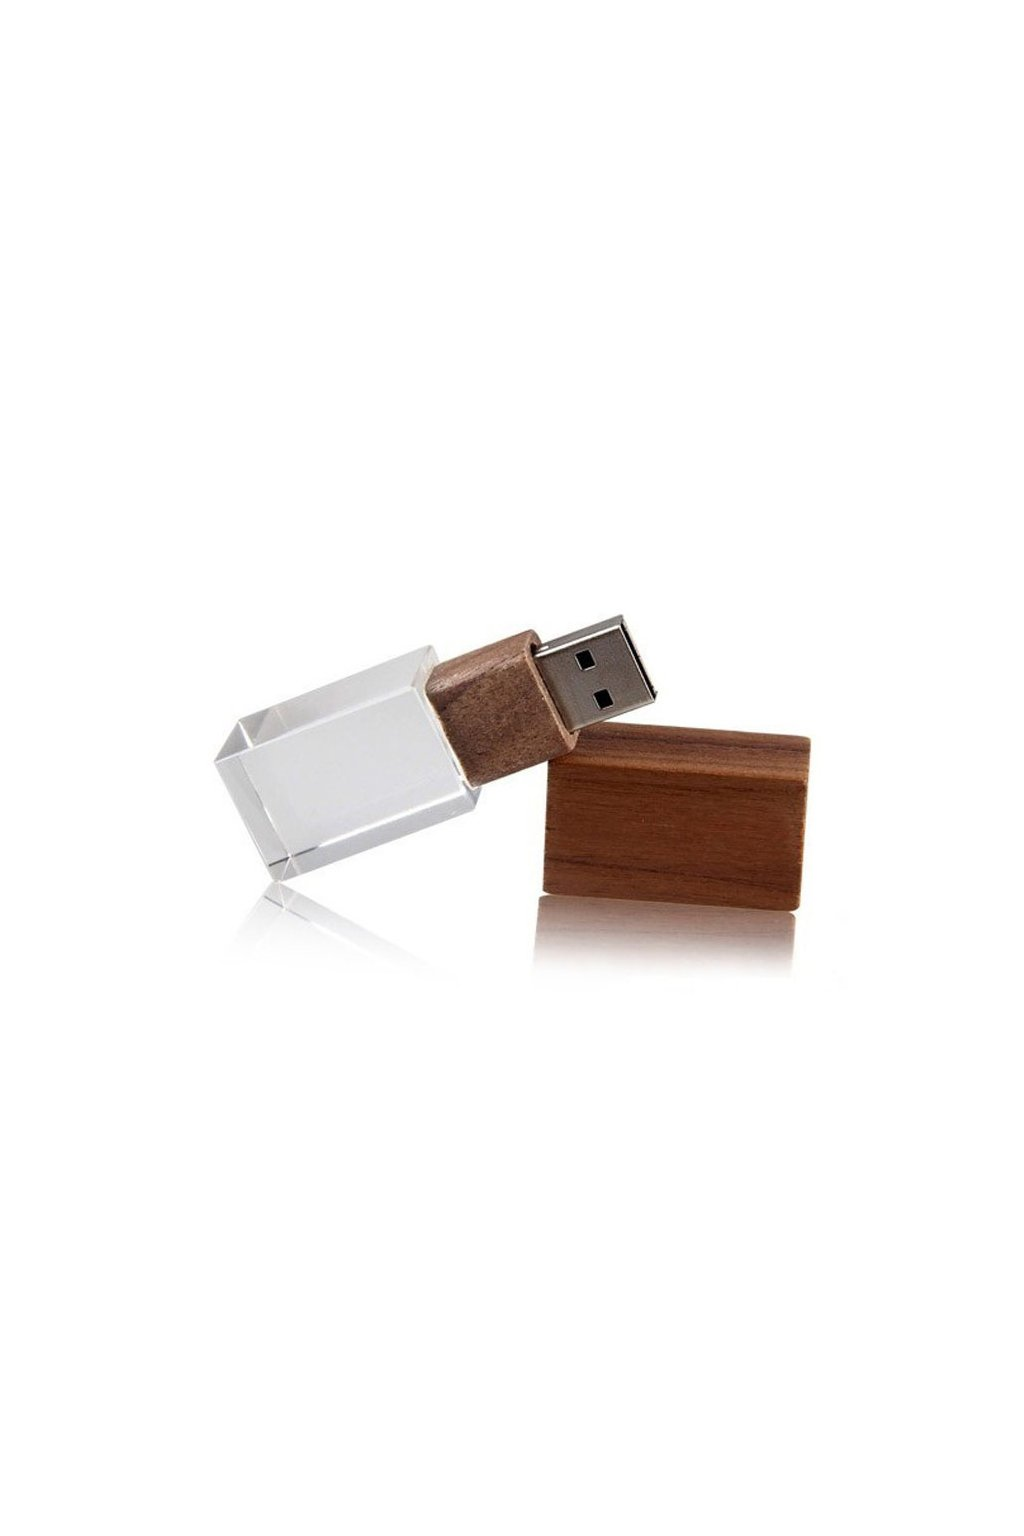 bamboo Glass usb flash drives